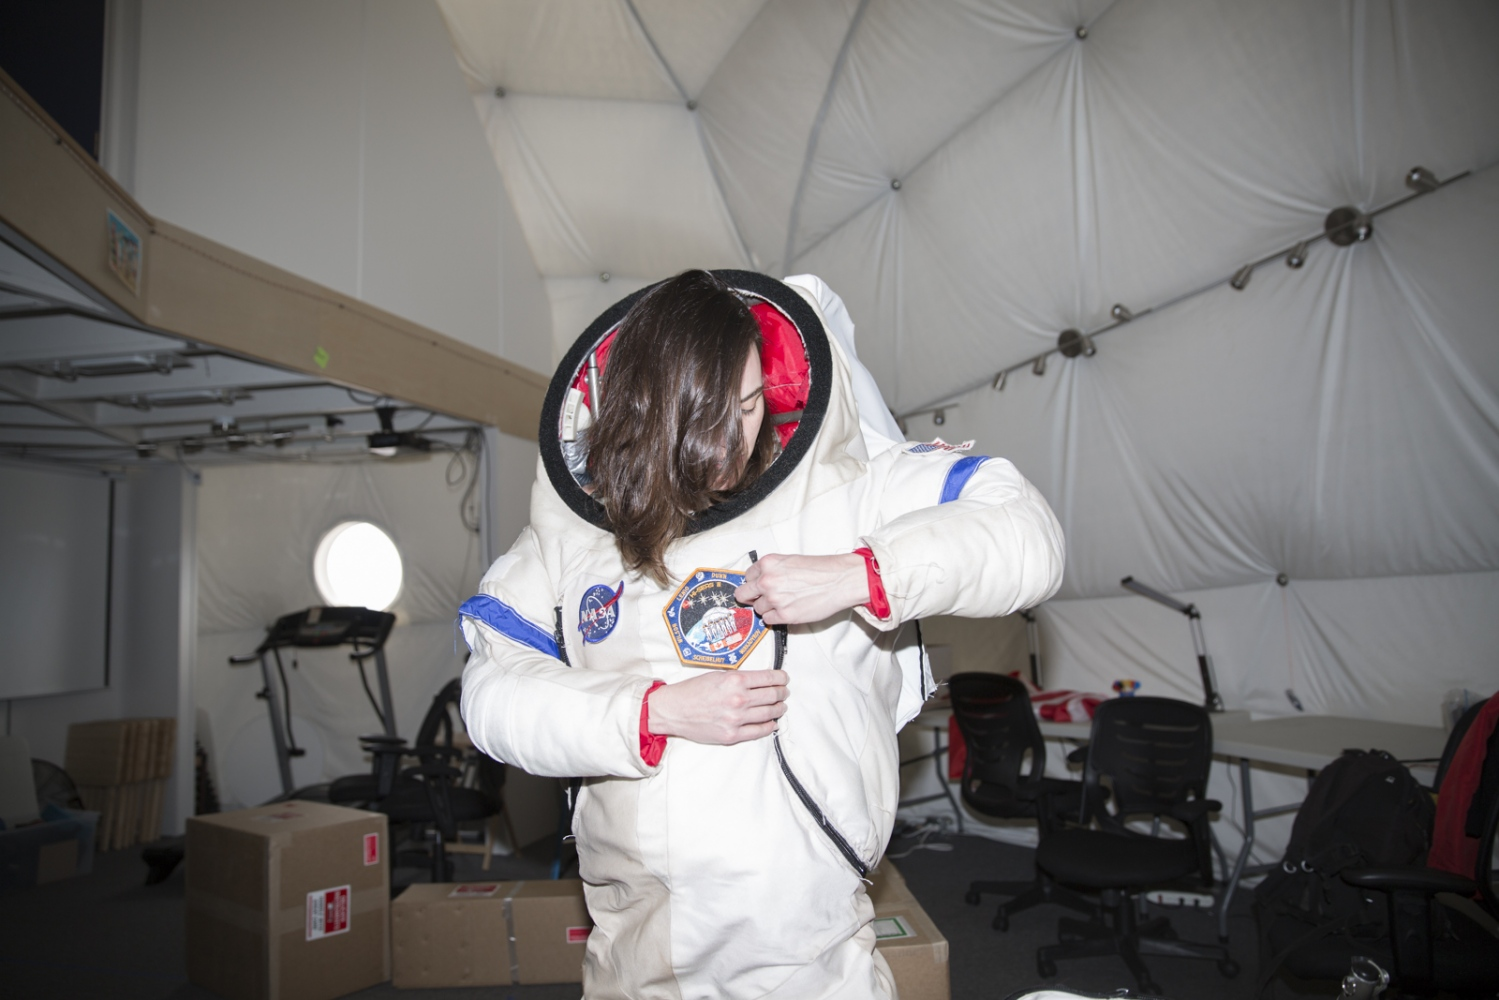 Jocelyn Dunn, crew of the NASA-financed human performance study called HI-SEAS, (Hawaii Space Exploration Analog and Simulation) adjusts her spacesuit for a walk outside of the dome where she spent eight months in confinement together with other five researchers in the crater of the volcano Mauna Loa, Hawaii, Big Island.